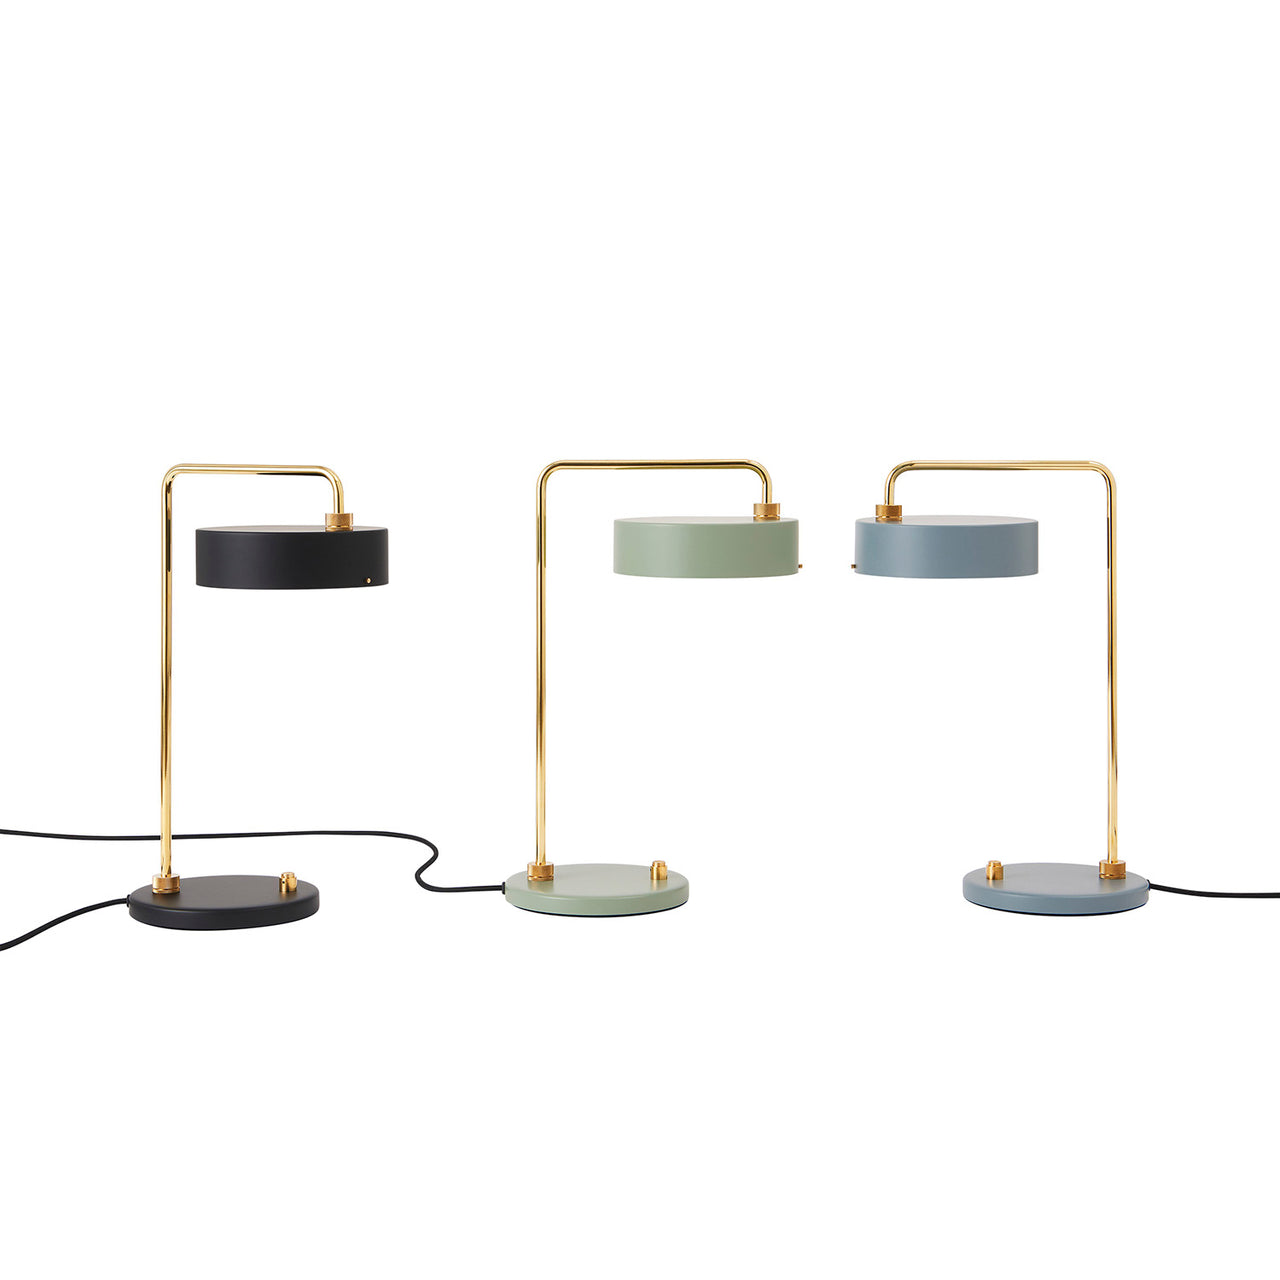 Petite Machine Light: Table 01: Deep Black + Moss Green + Slate